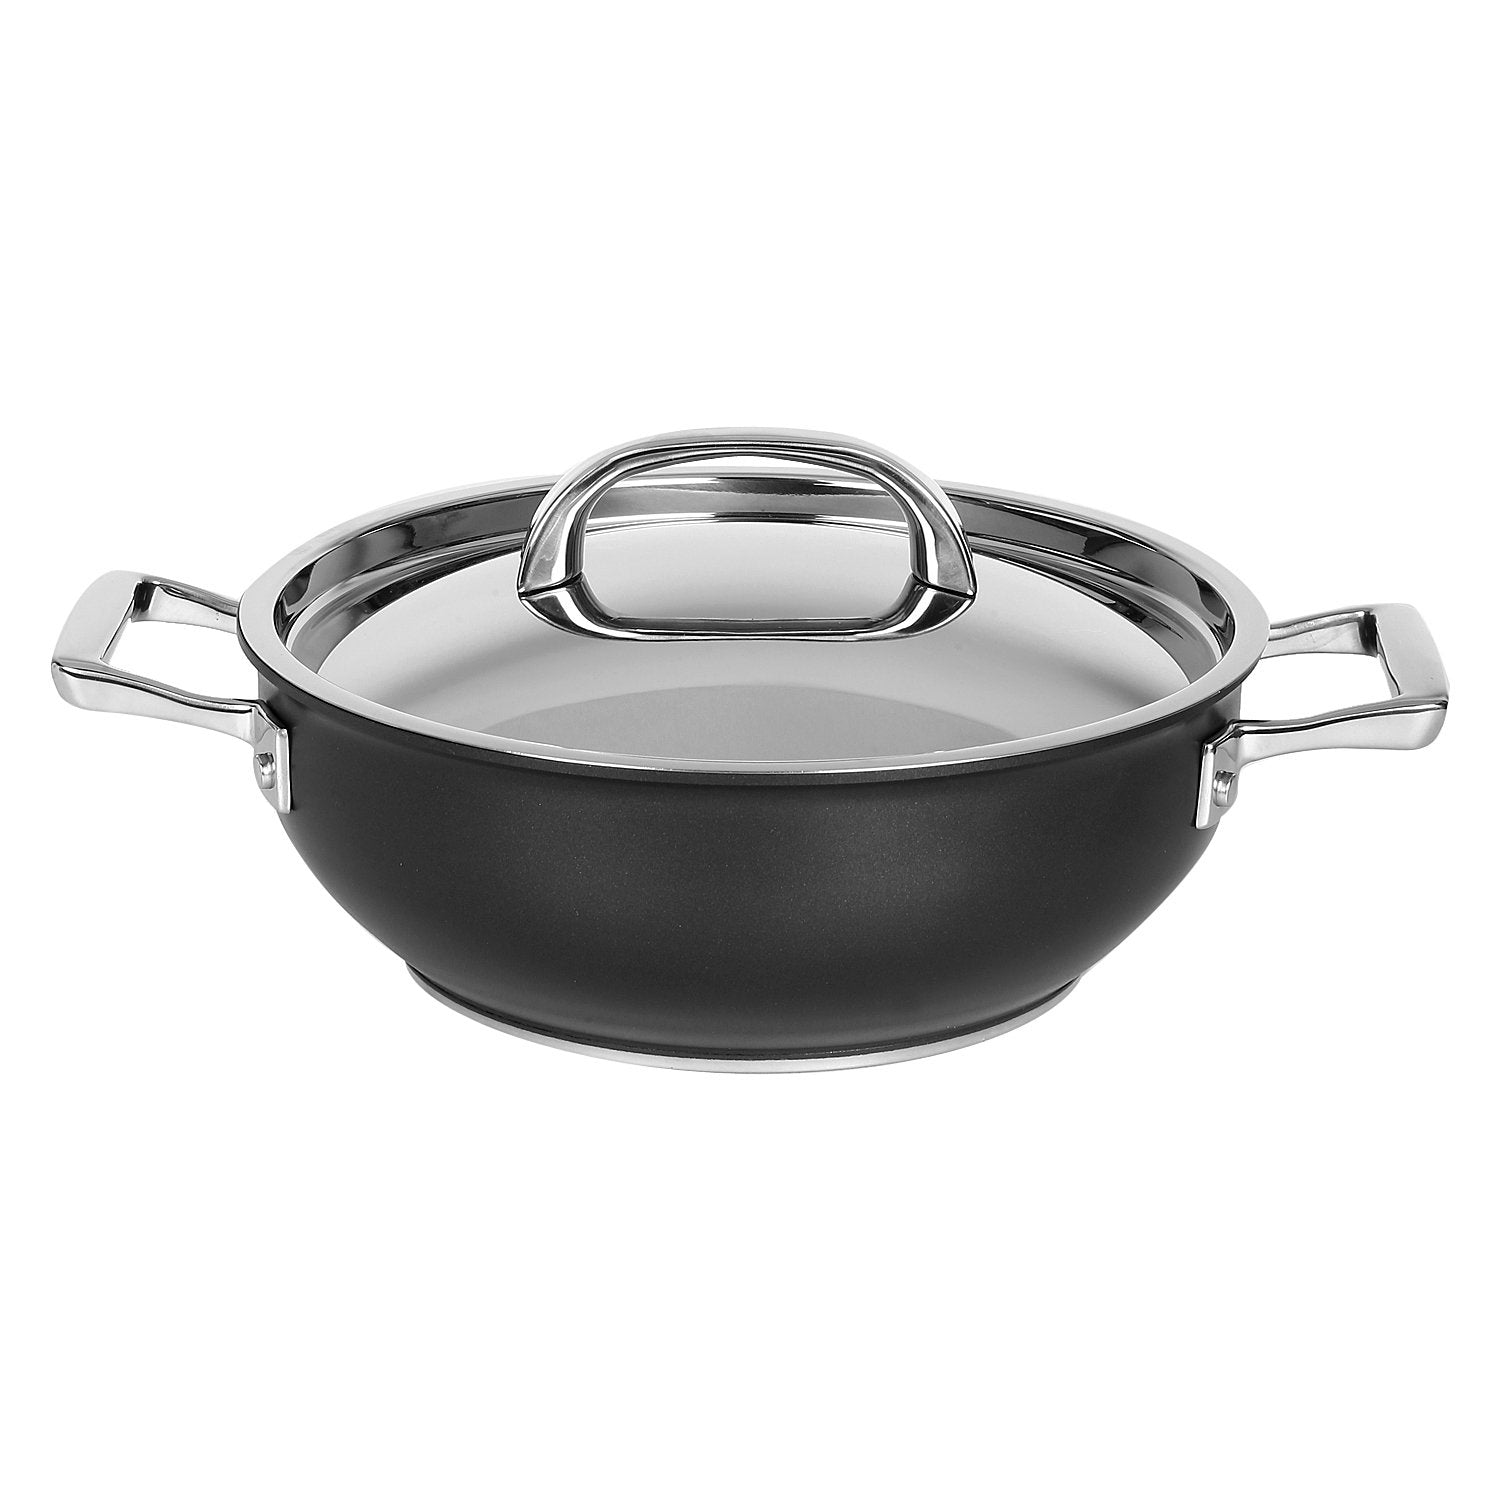 Circulon Hard Anodized + Non-Stick Chef's Casserole, Skillet and Curved Tawa 4-Piece Cookware Set - PotsandPans